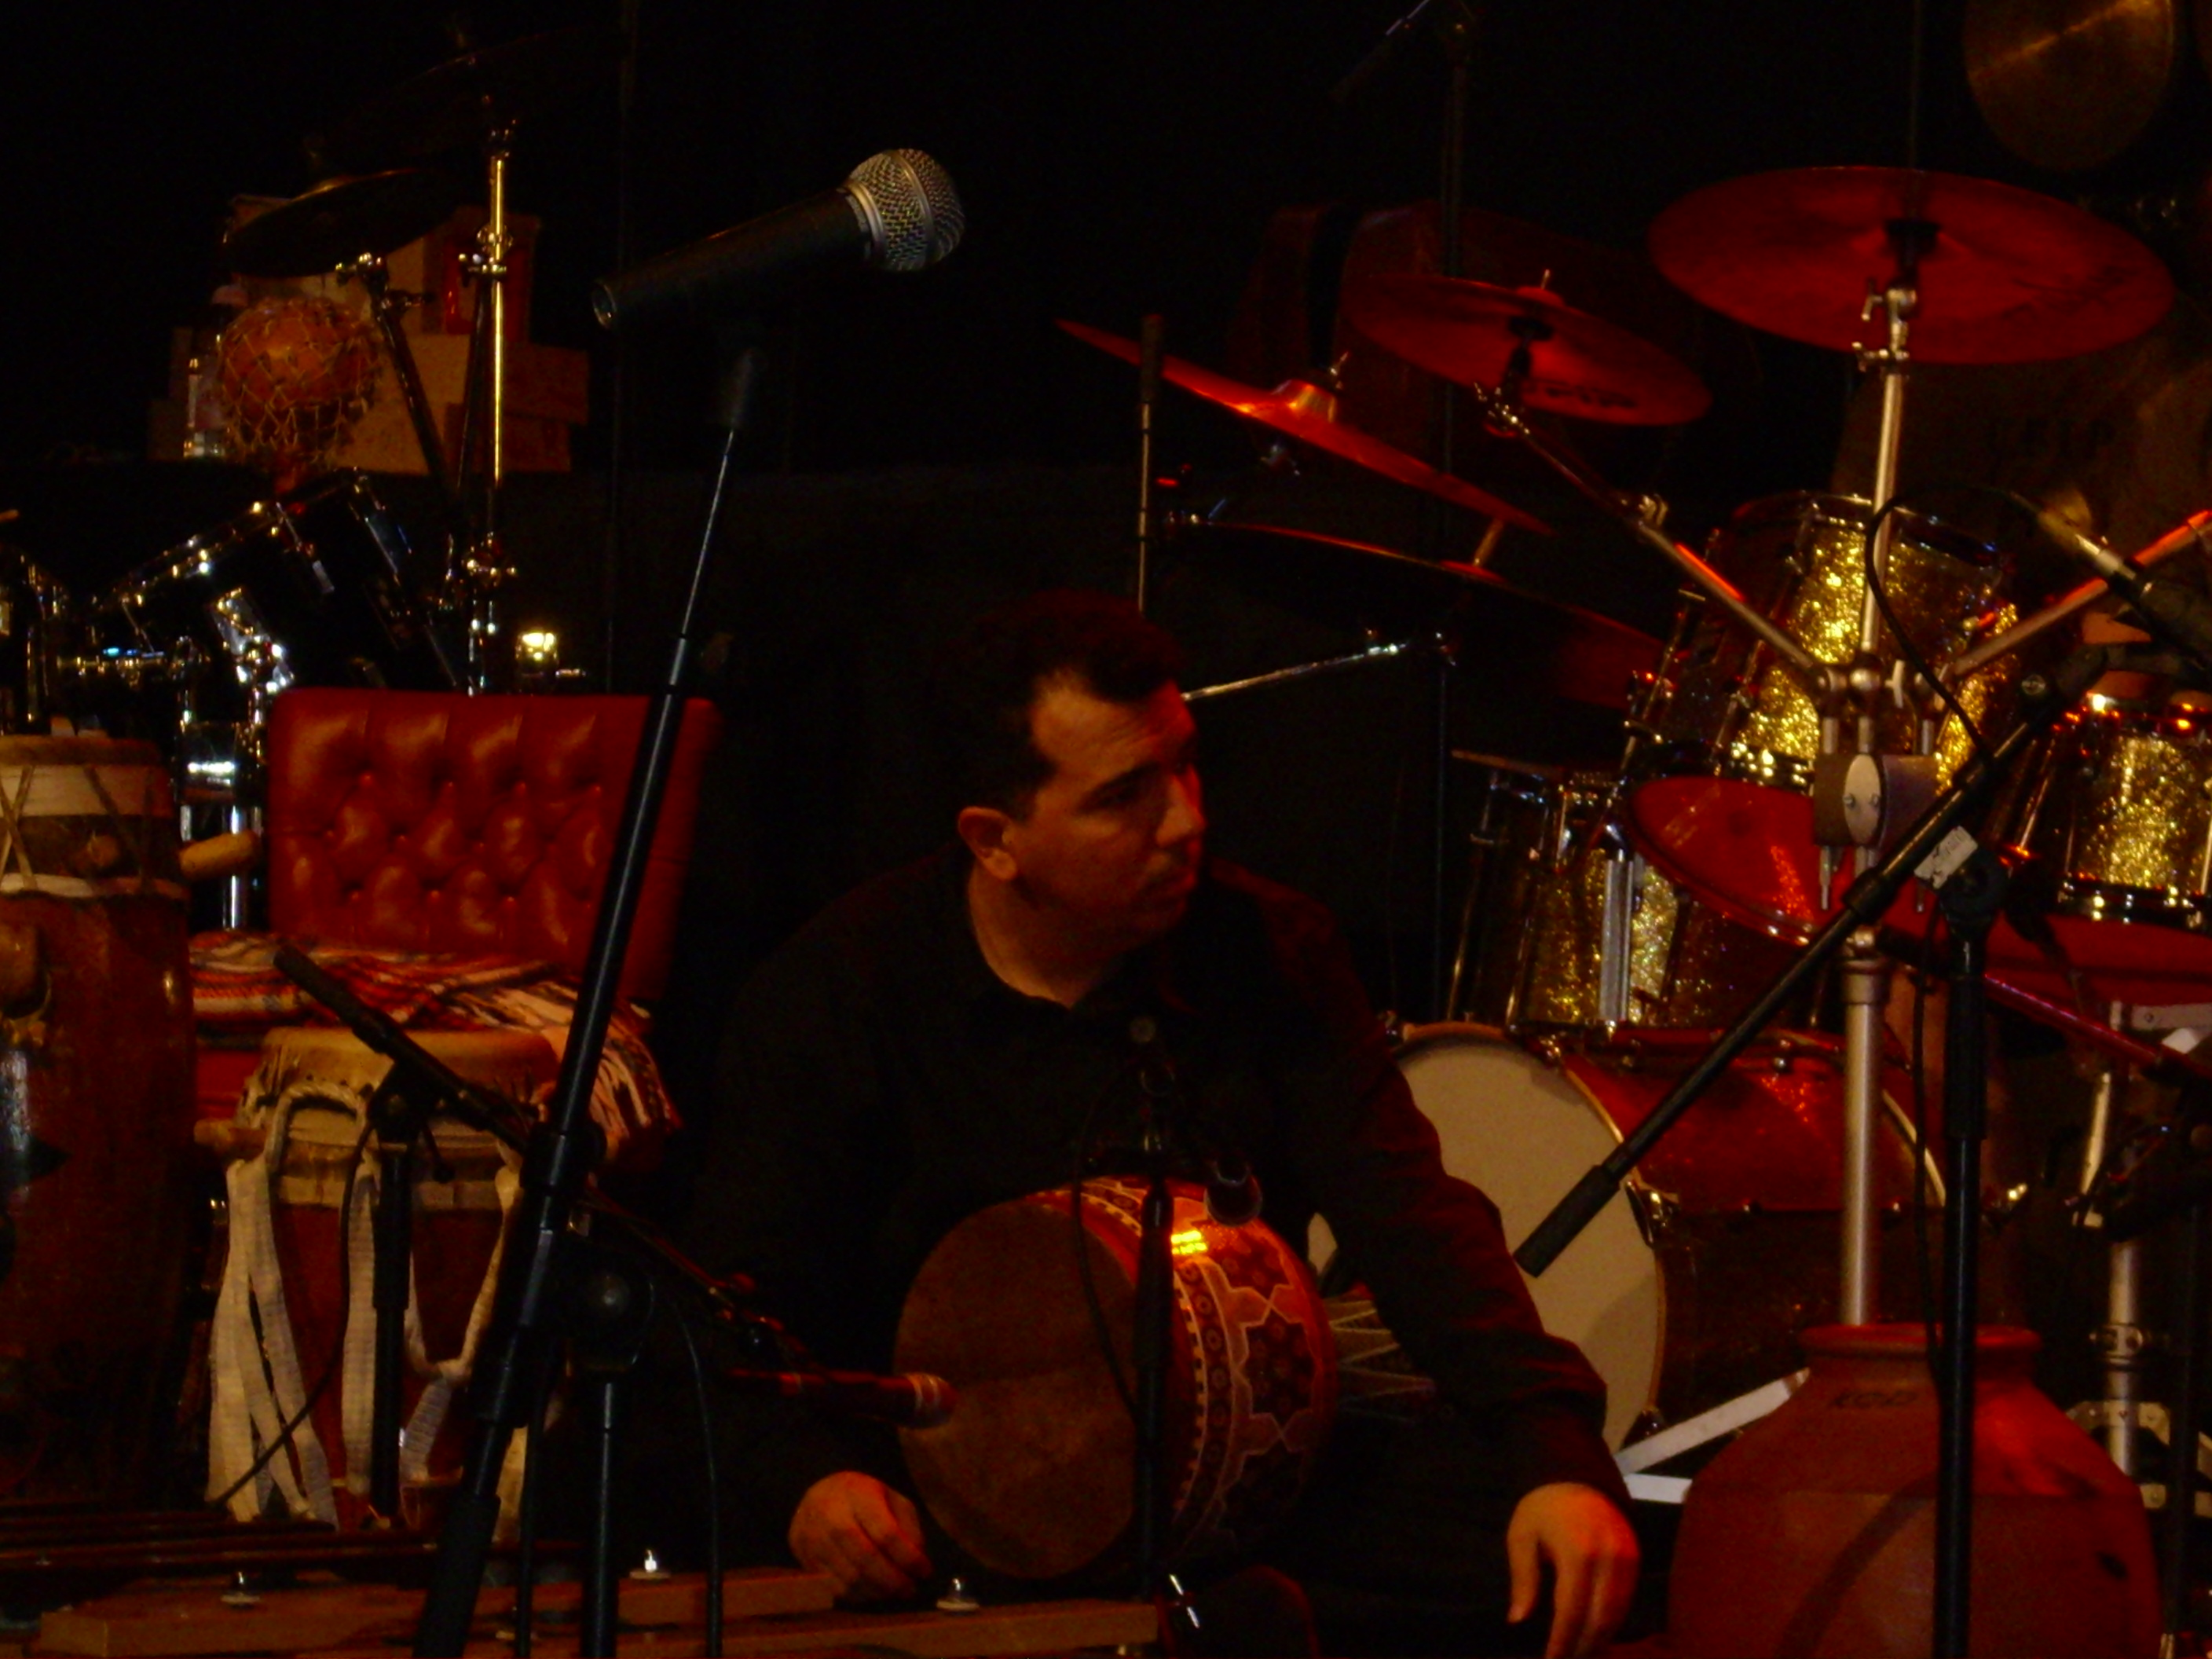 Peyman's concert in Cologne, Germany in 2007 (Family of Percussion Tour)